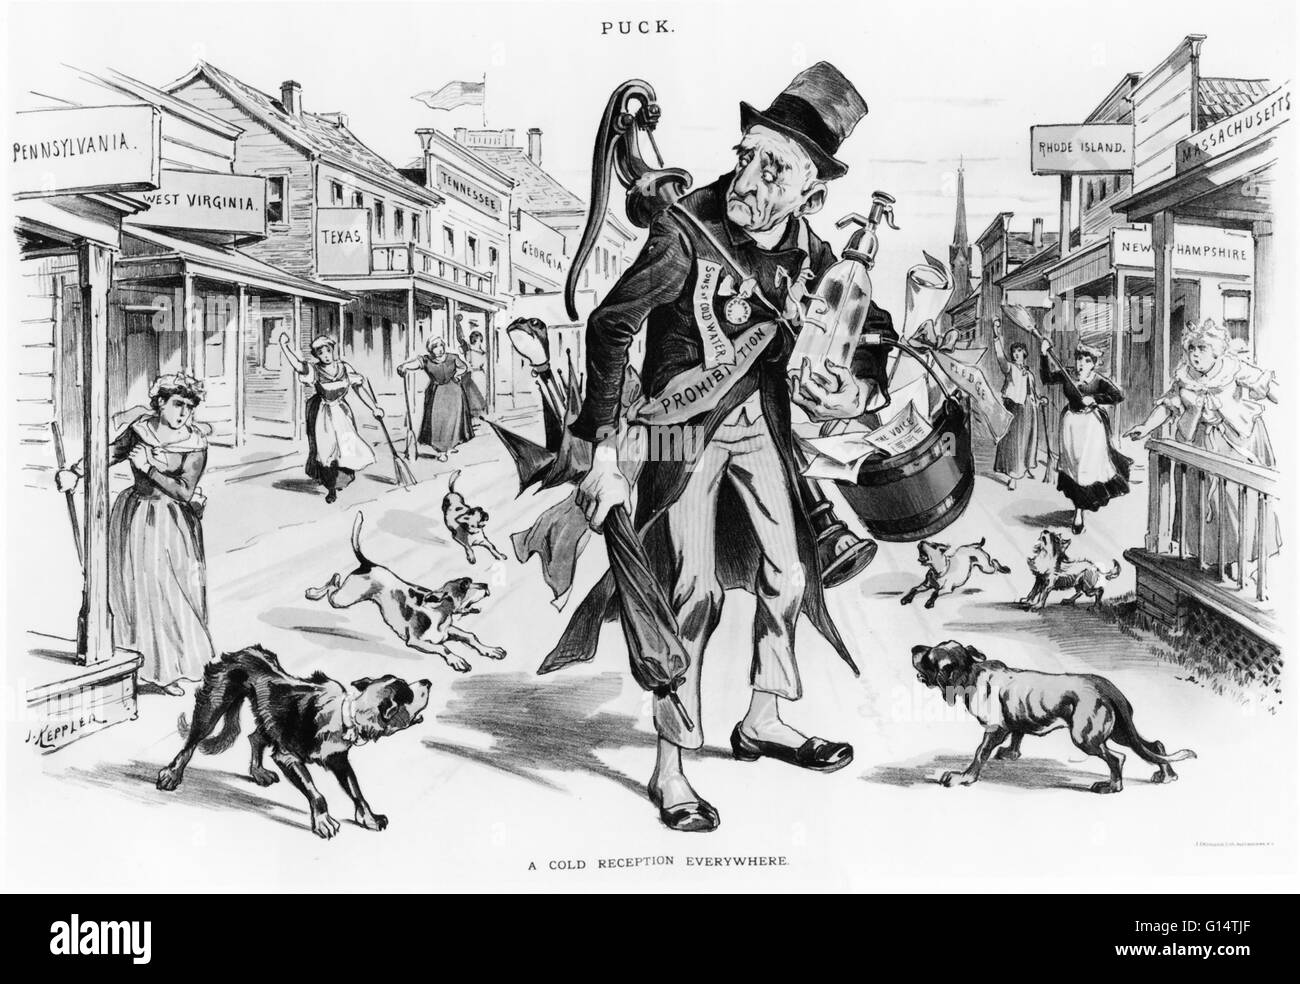 Political cartoon showing Old Man Prohibition receiving 'a cold reception everywhere.' - Stock Image